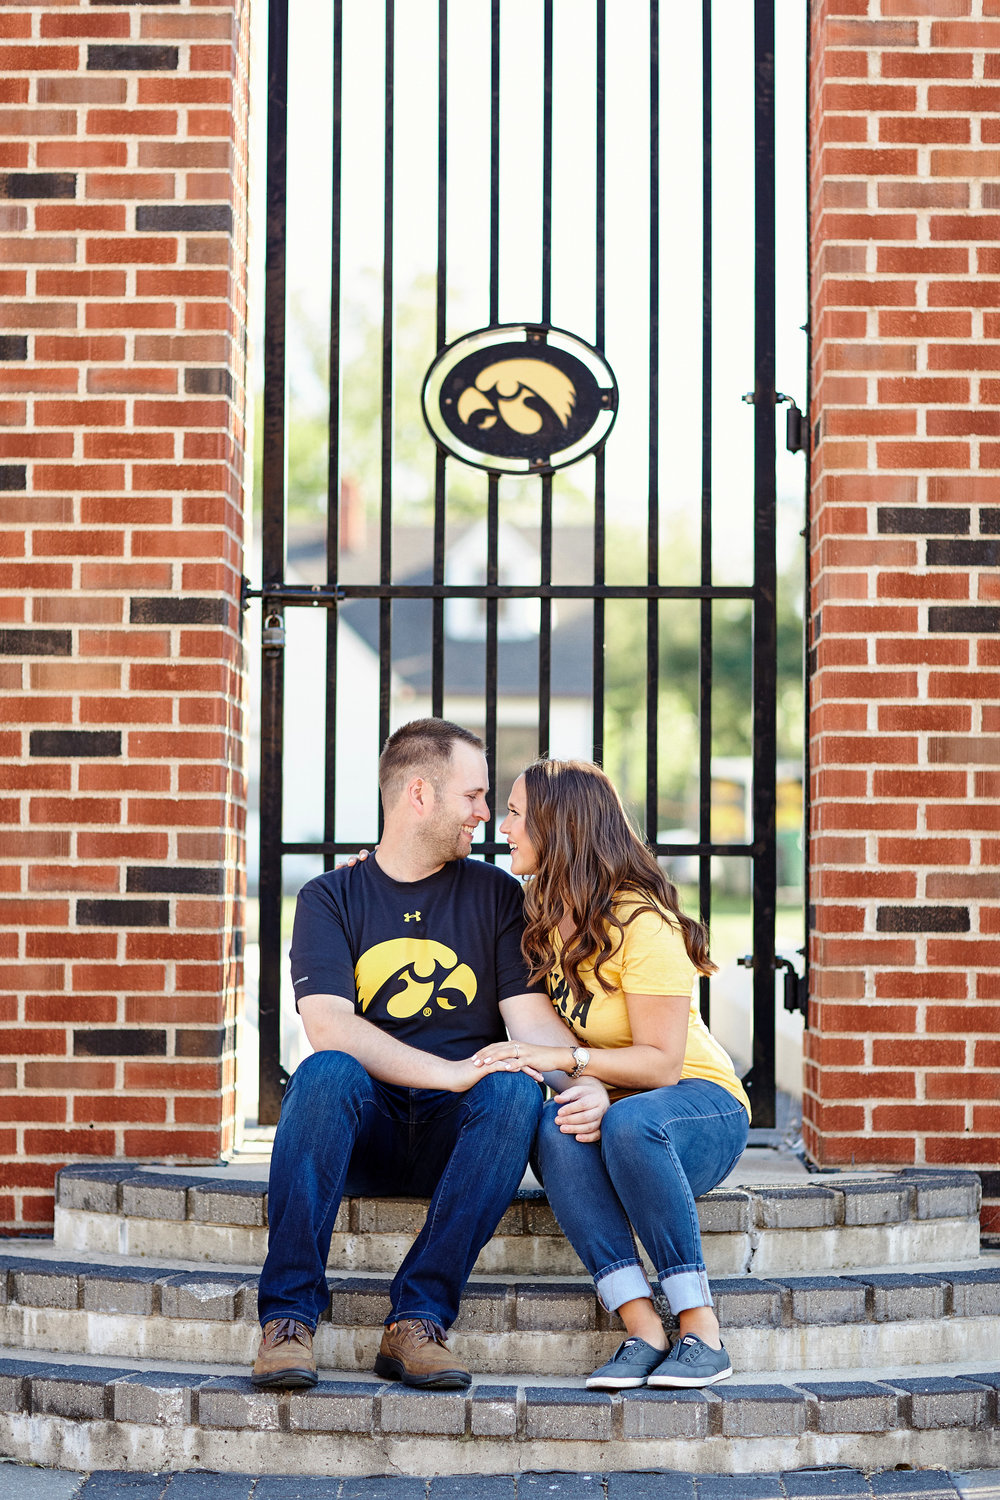 Iowa City Engagement Session by St Louis Wedding Photographers Oldani Photography 4.jpg